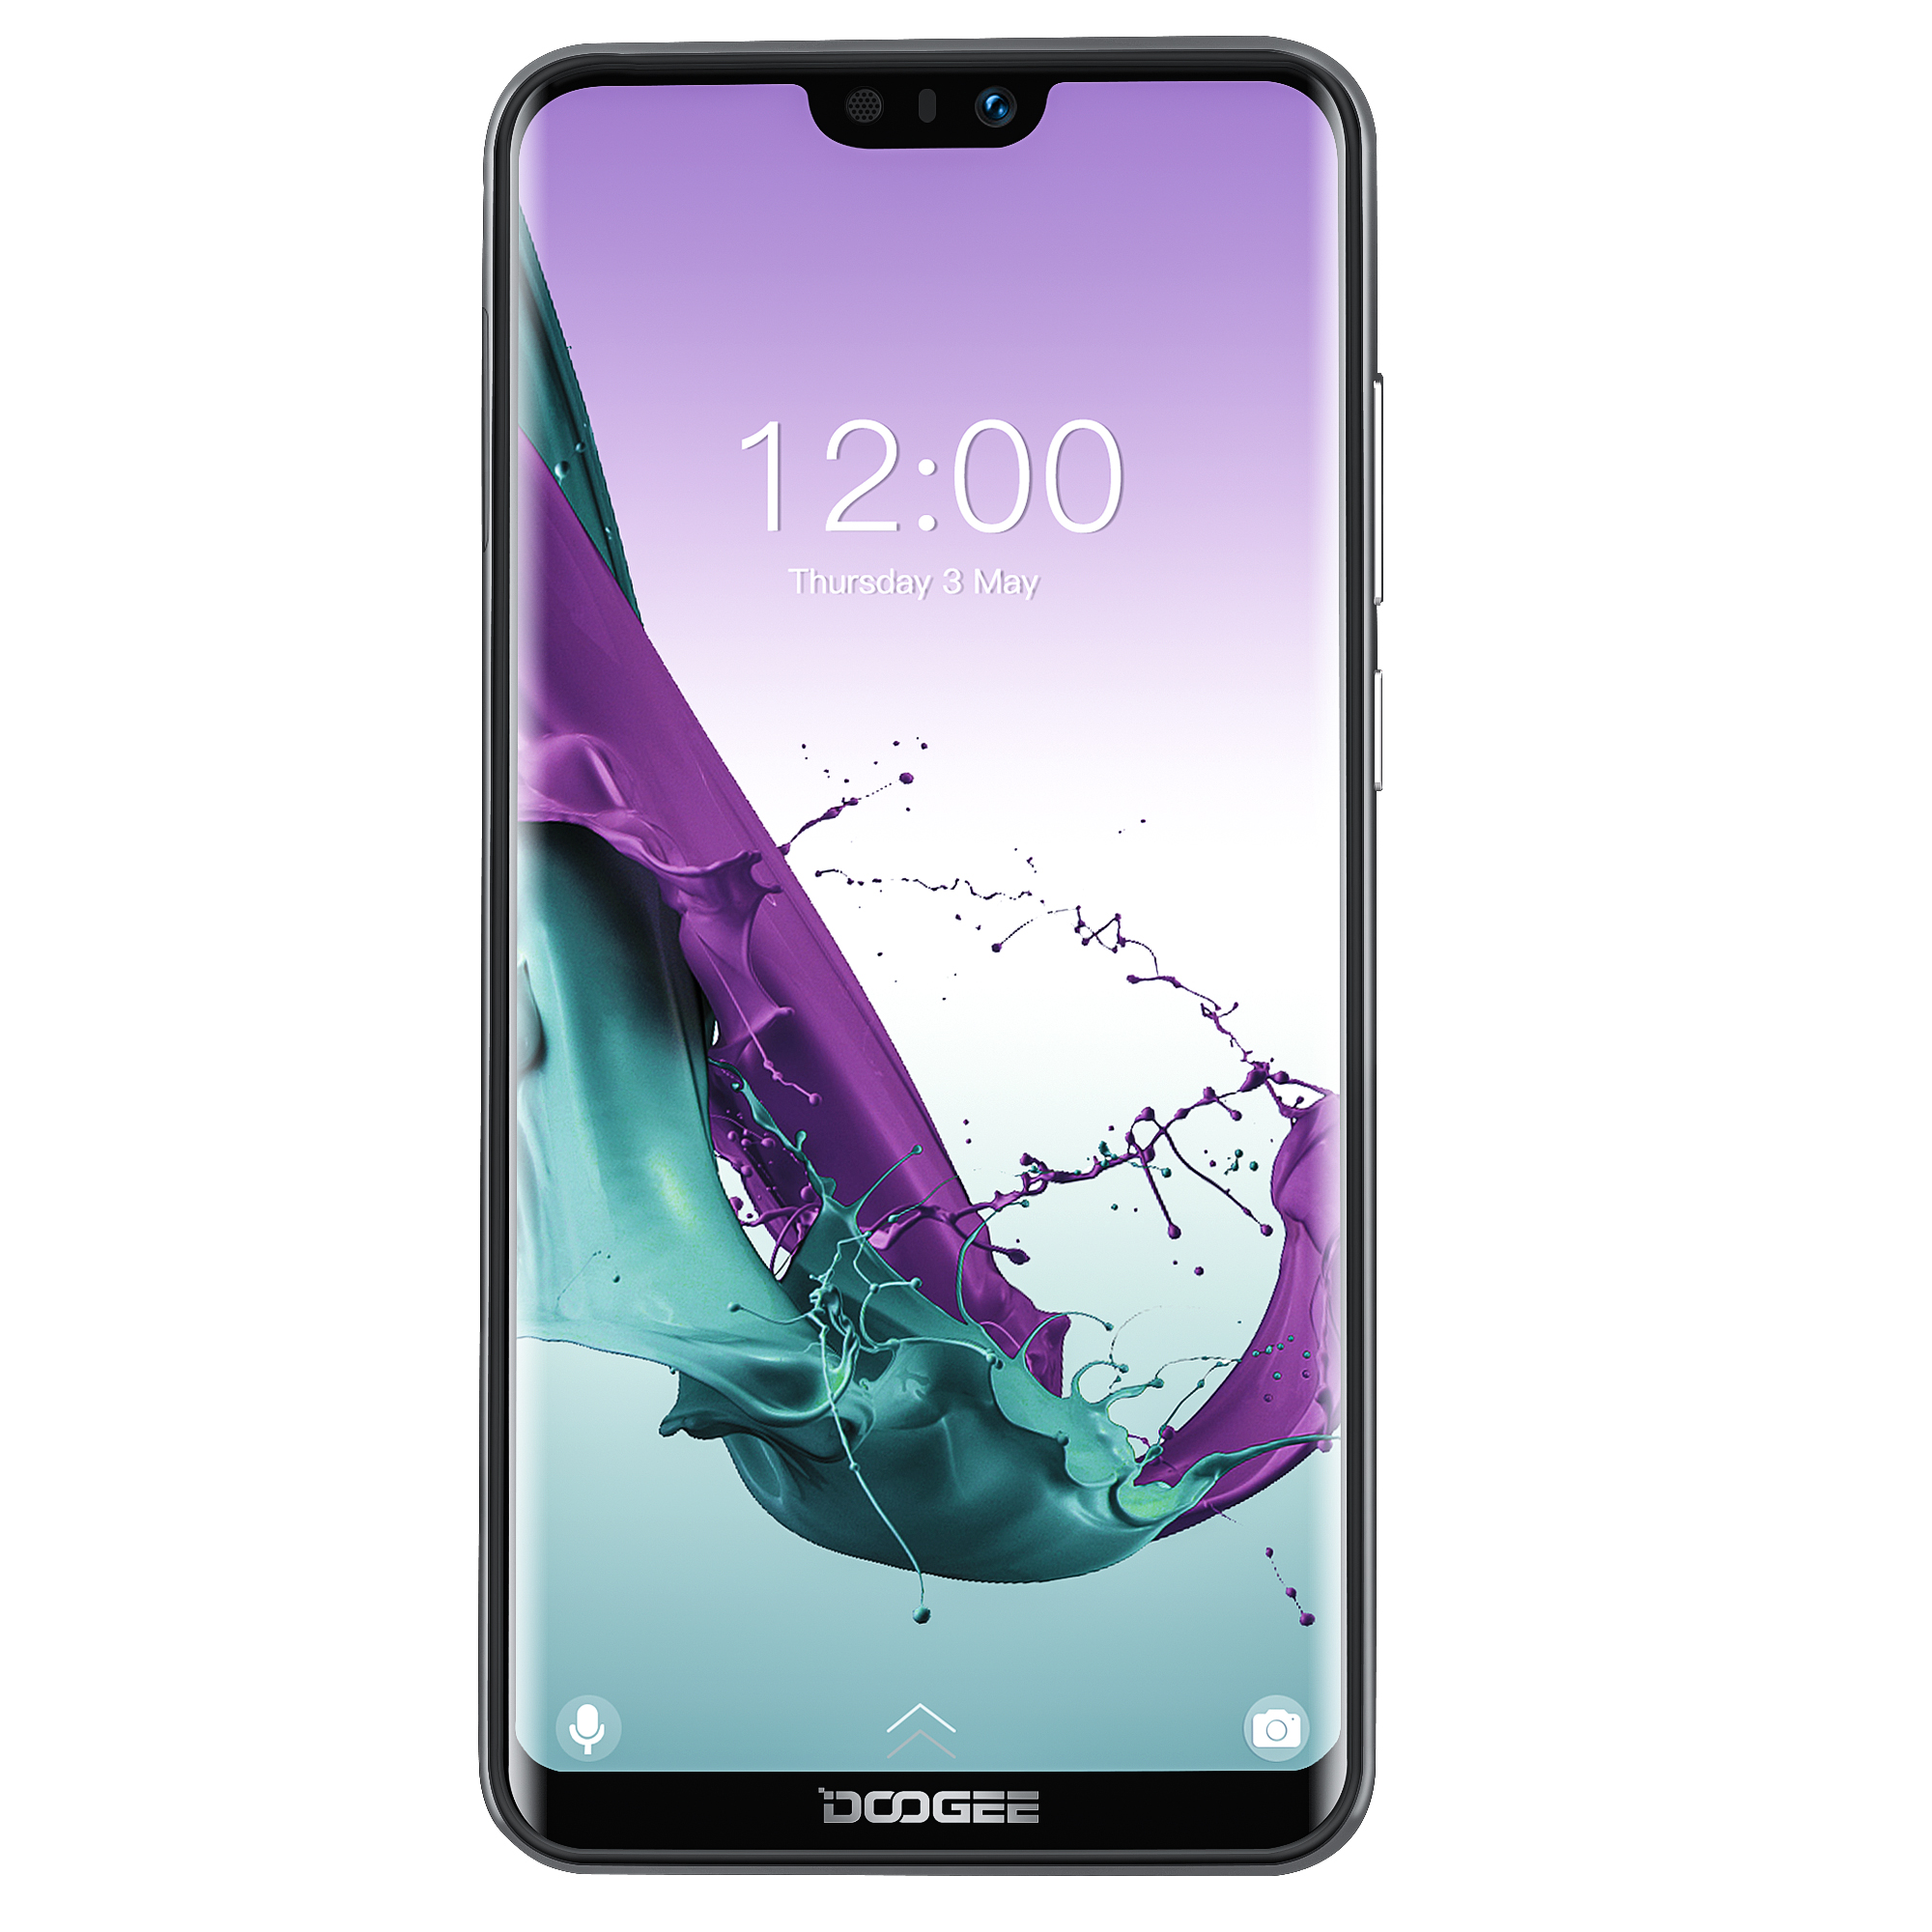 DOOGEE N10 2019 Android 8.14G LTE téléphone portable 5.84 pouces Octa Core 3GB RAM 32GB ROM FHD 19:9 affichage 16.0MP caméra frontale 3360mAh